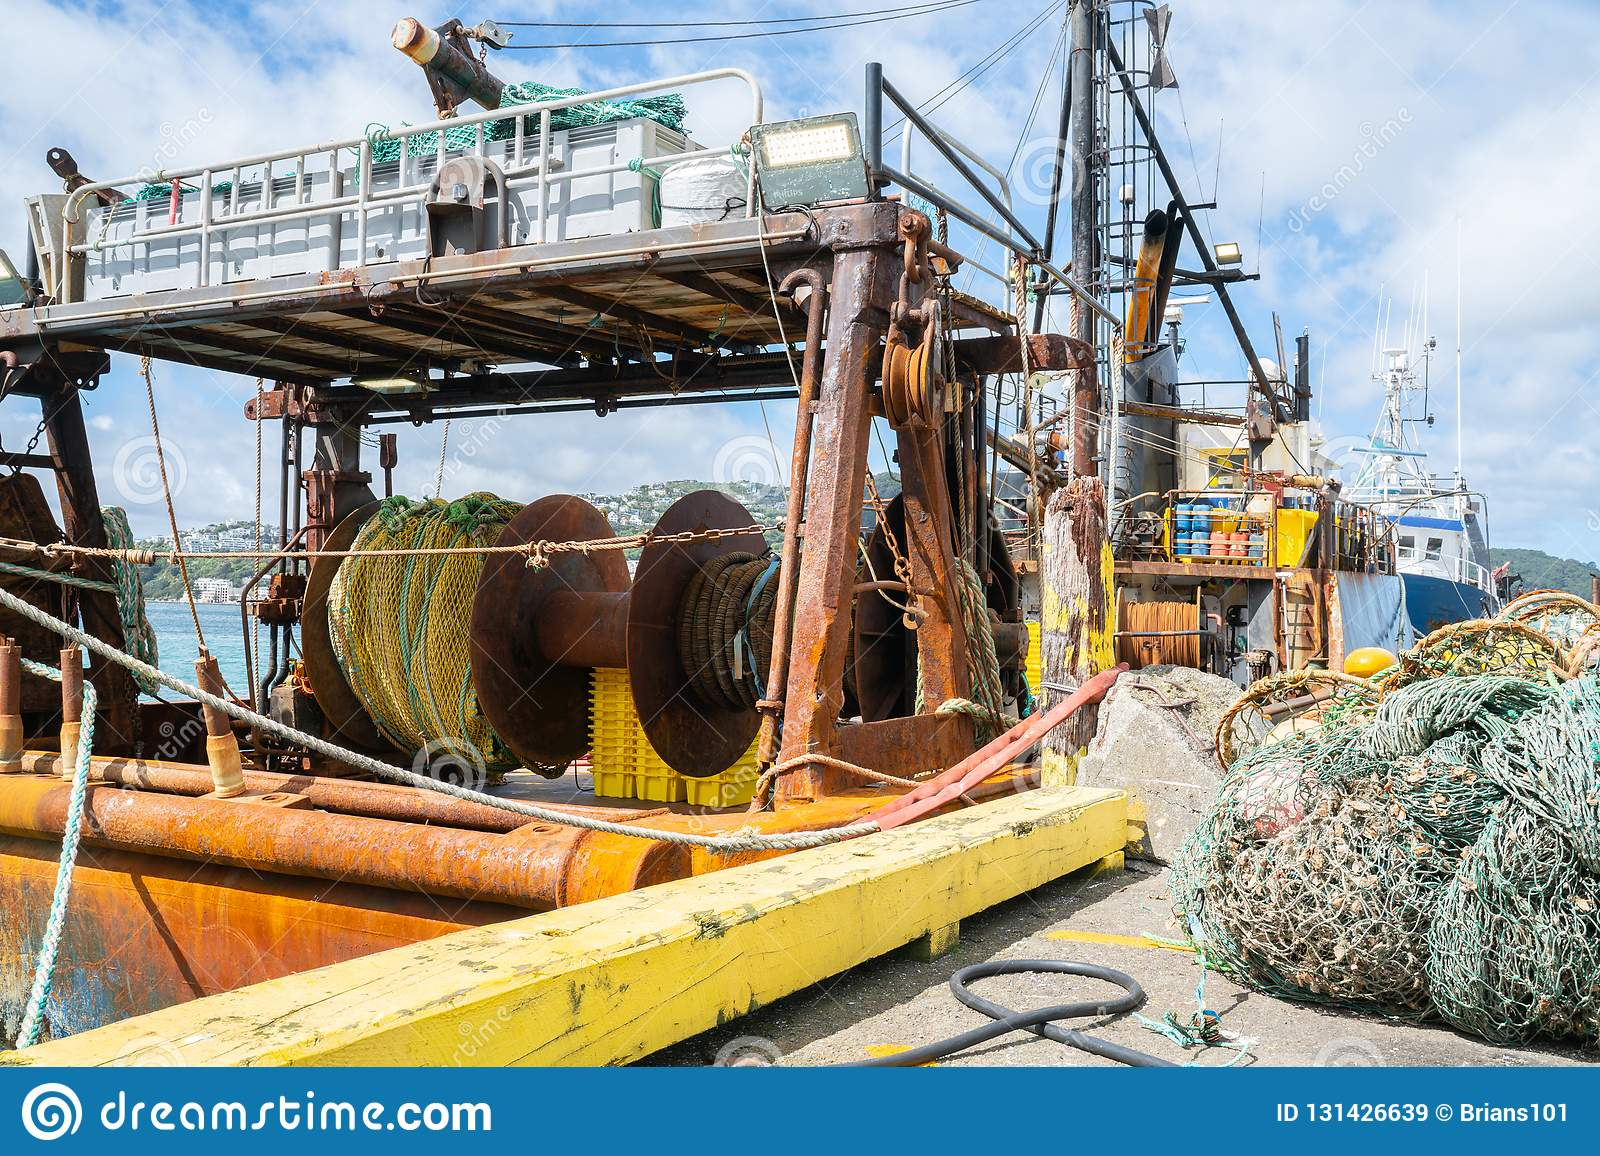 Commercial Fishing Boats Gear And Nets Moored At Wharf